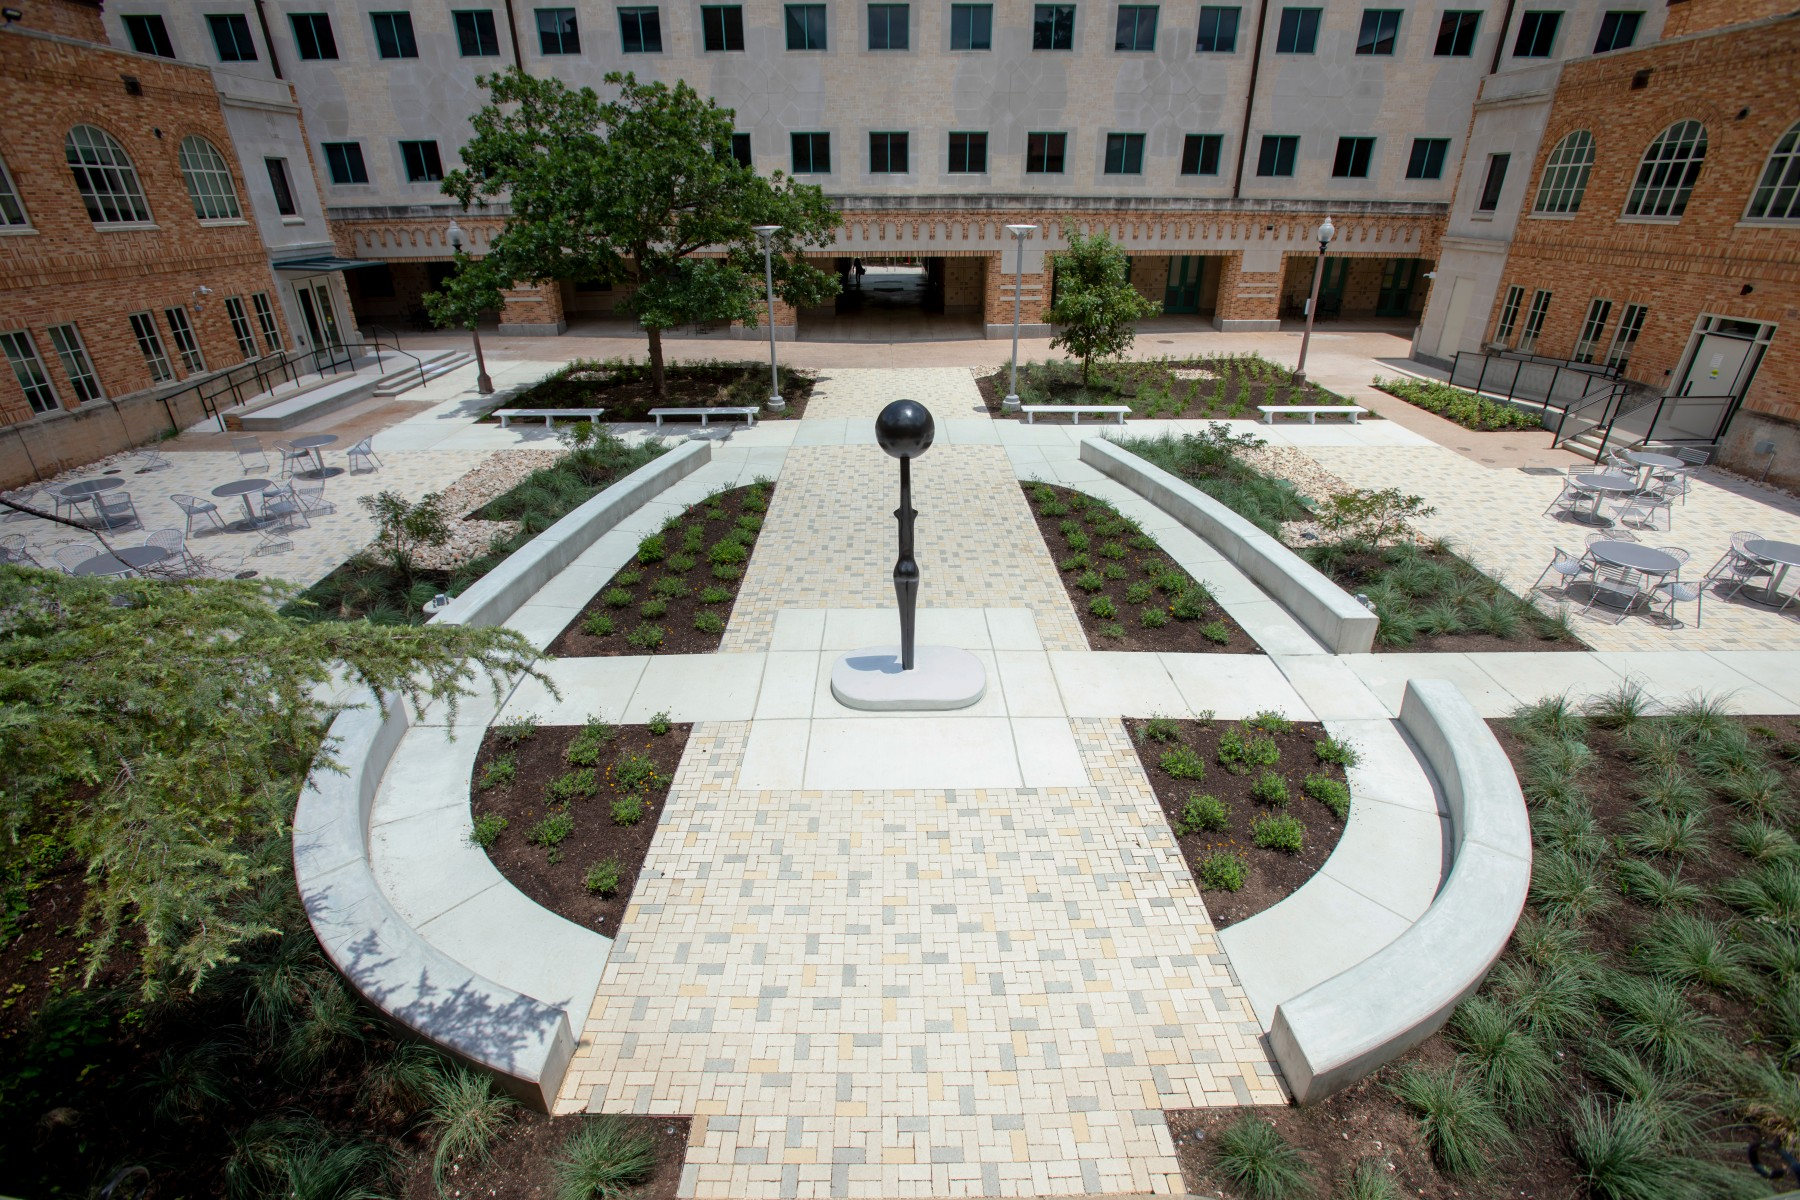 An above view of Anna Hiss Gymnasium courtyard with Simone Leigh's Sentinel IV in the center and two seating arms surrounding it.